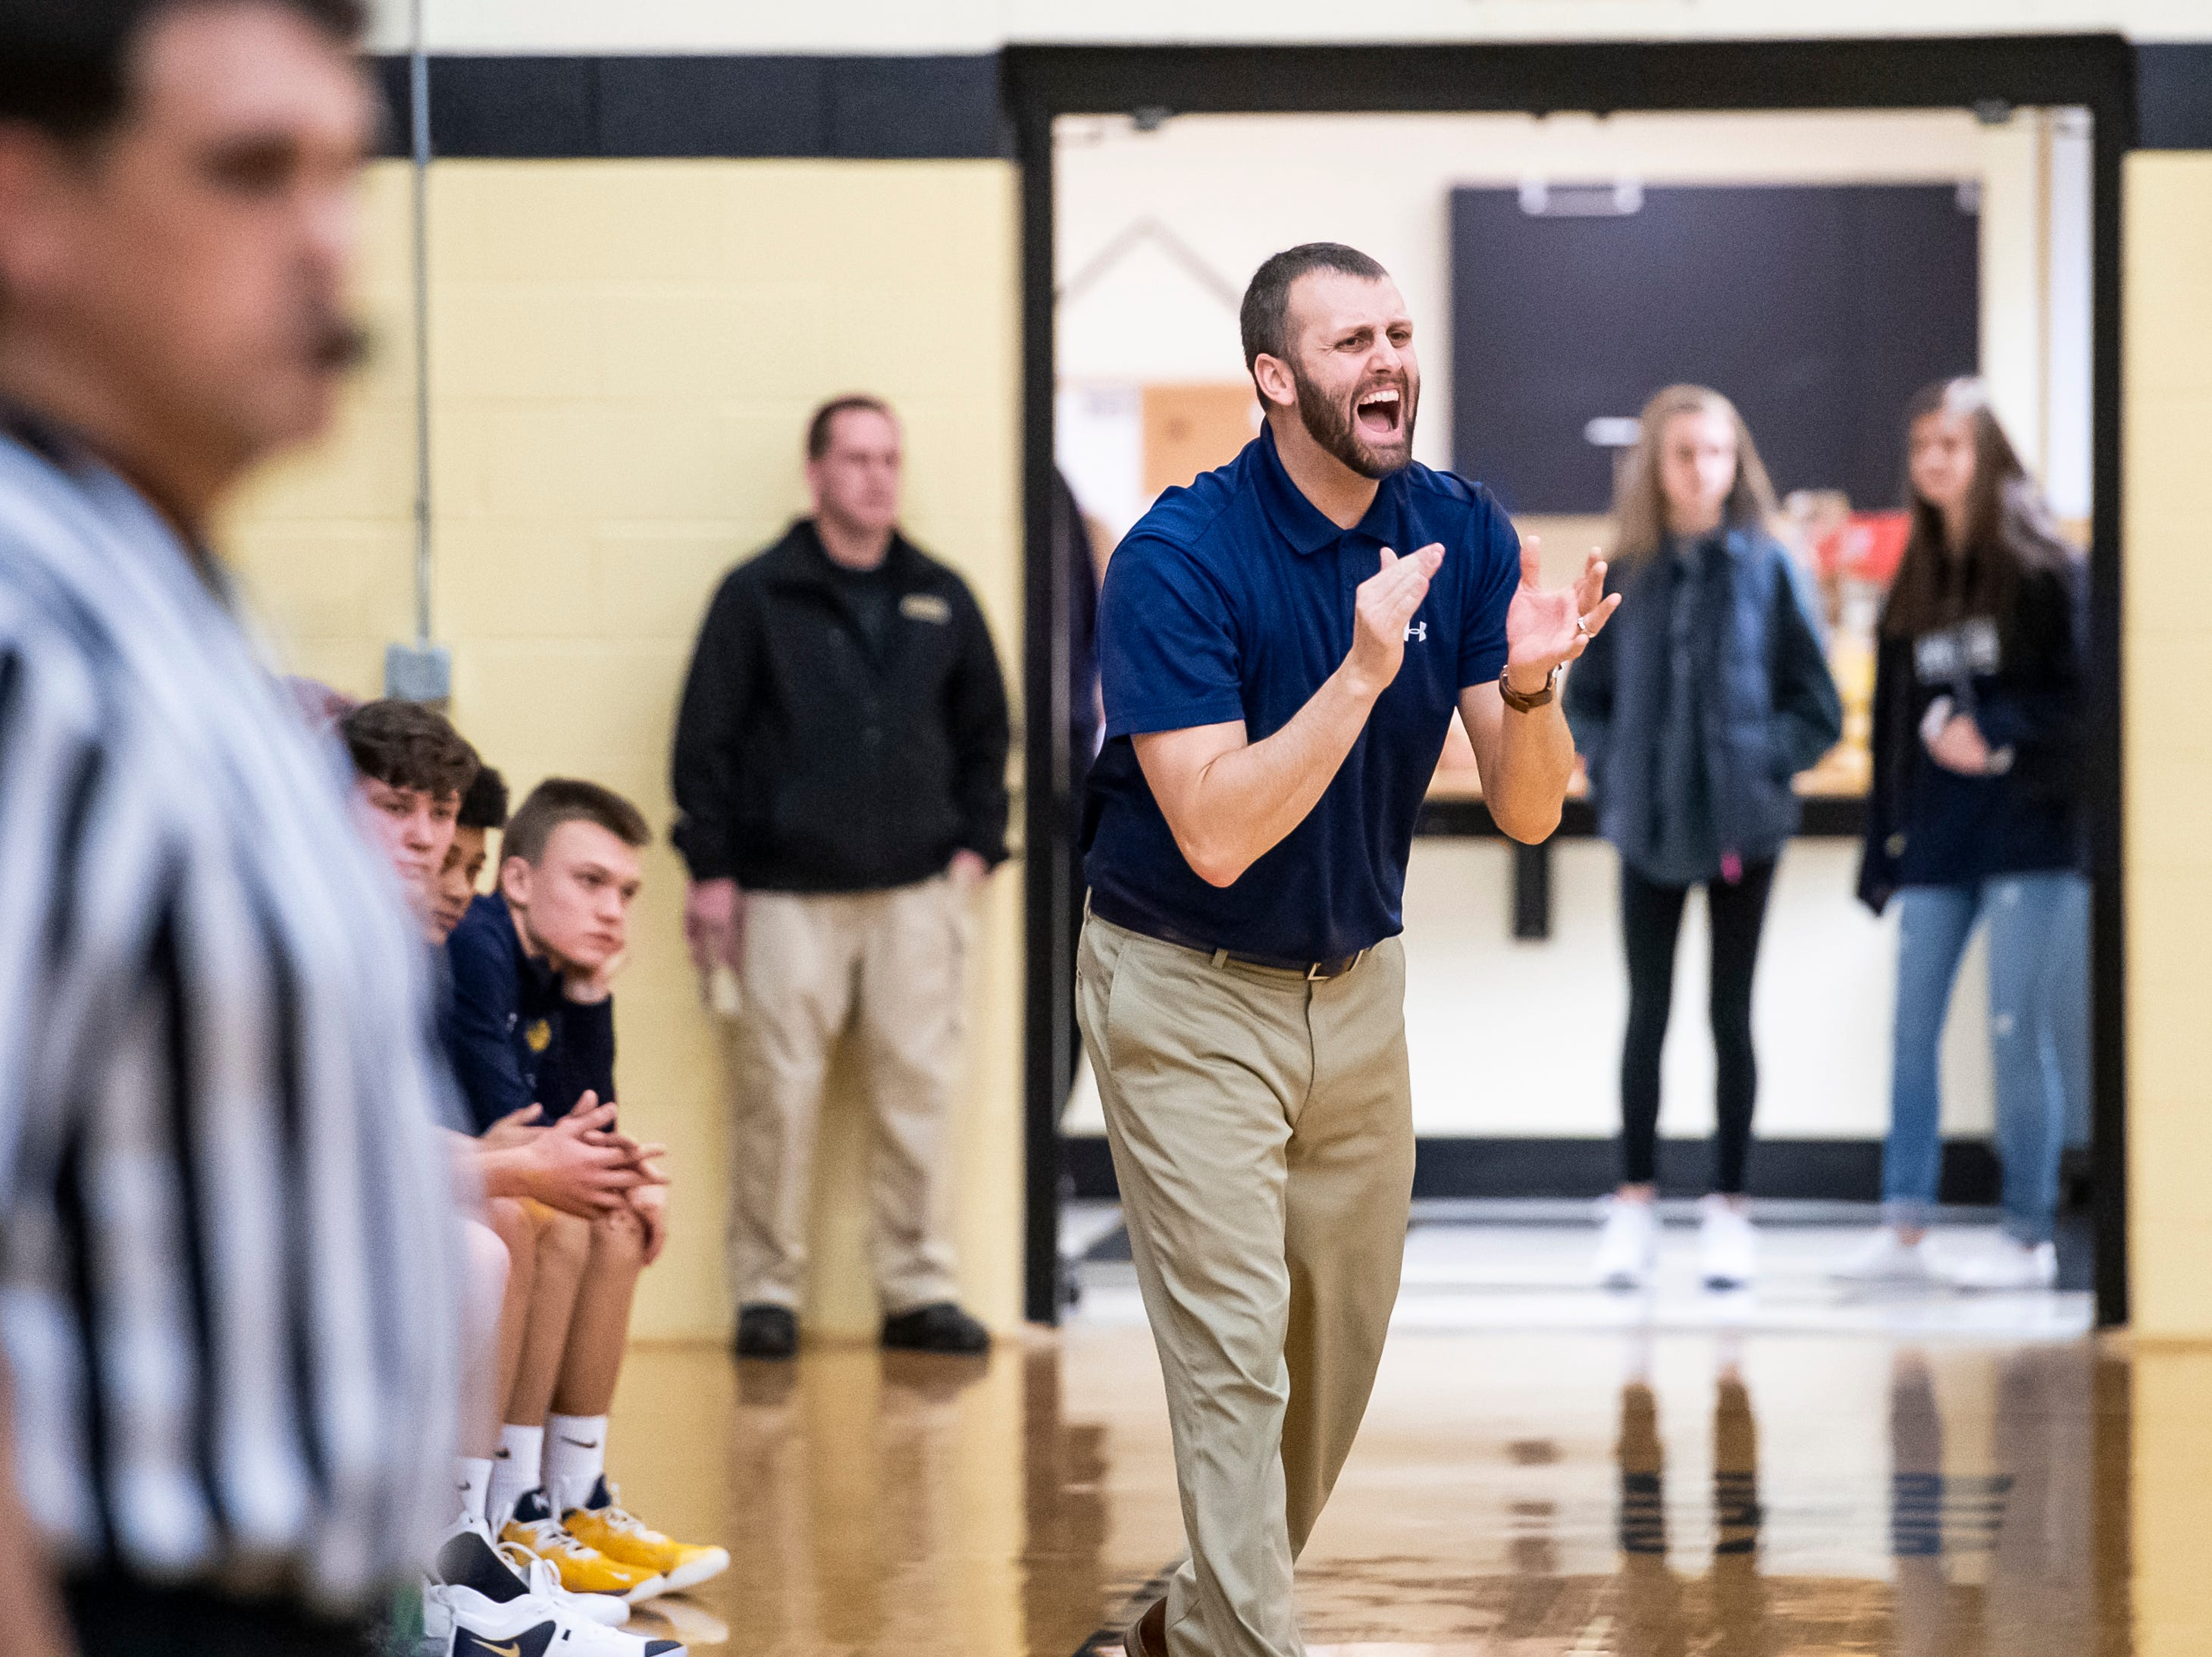 Littlestown head coach Jonathan Forster reacts after the Bolts score during play against Biglerville on Friday, January 11, 2019. The Bolts won 65-38.